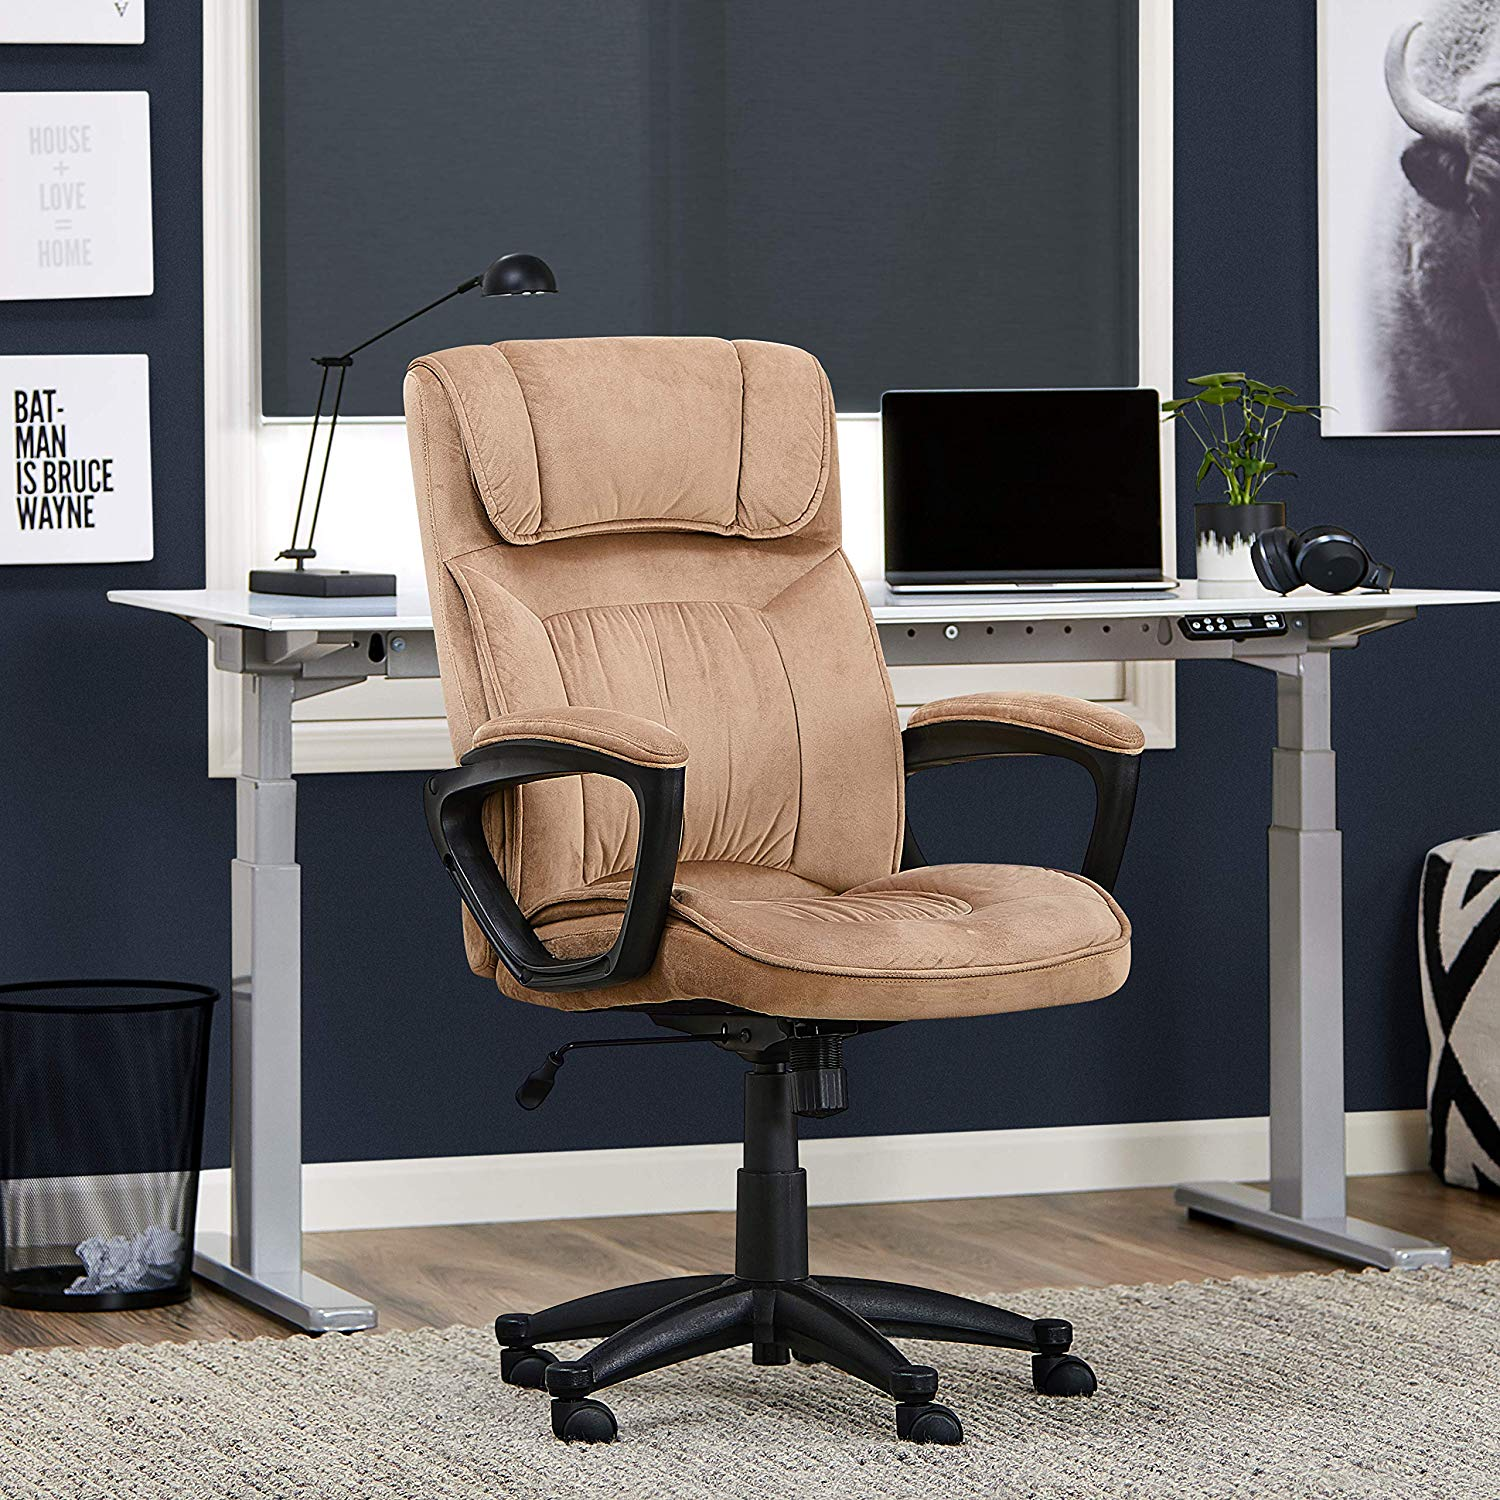 Serta Style Hannah I Office Chair, Microfiber - Executive Chairs